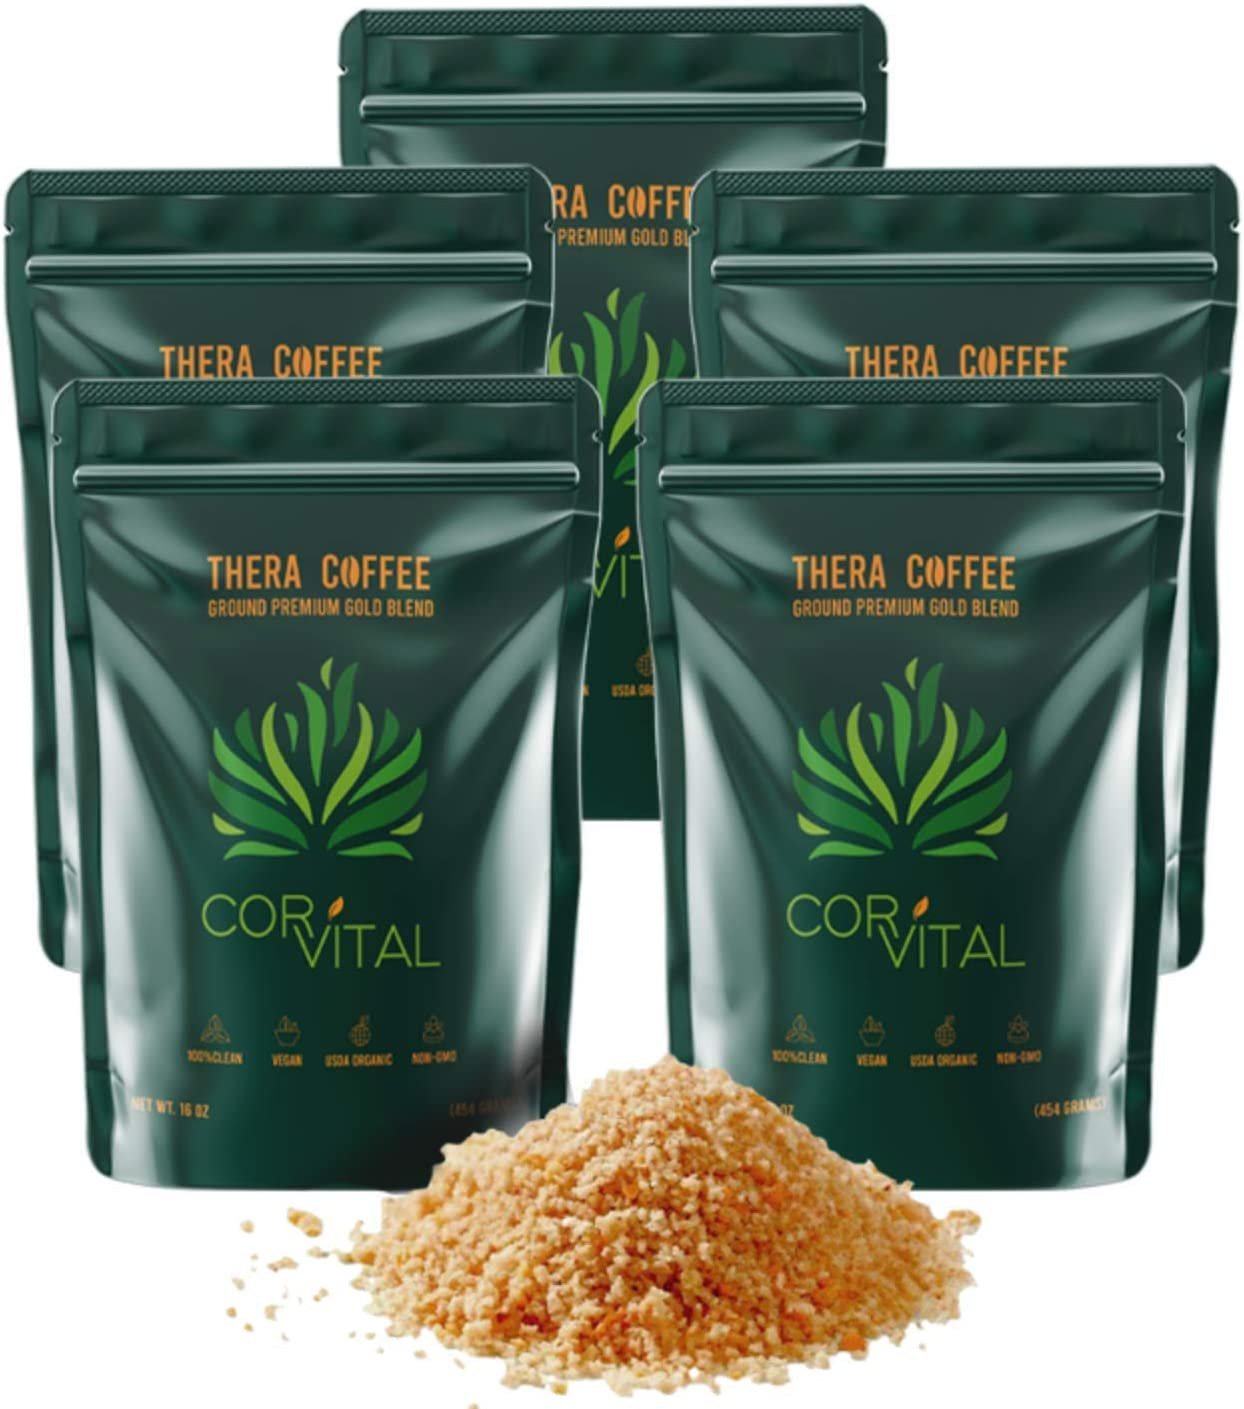 *die Real Deal* Cor-Vital 5 LBS Organic Enema Coffee Best for Coffee Enema Colon Cleanse and Detox 100% Organic Green Coffee Beans Ground w/Free Detox Recipe - Gold Roast - Gerson Approved